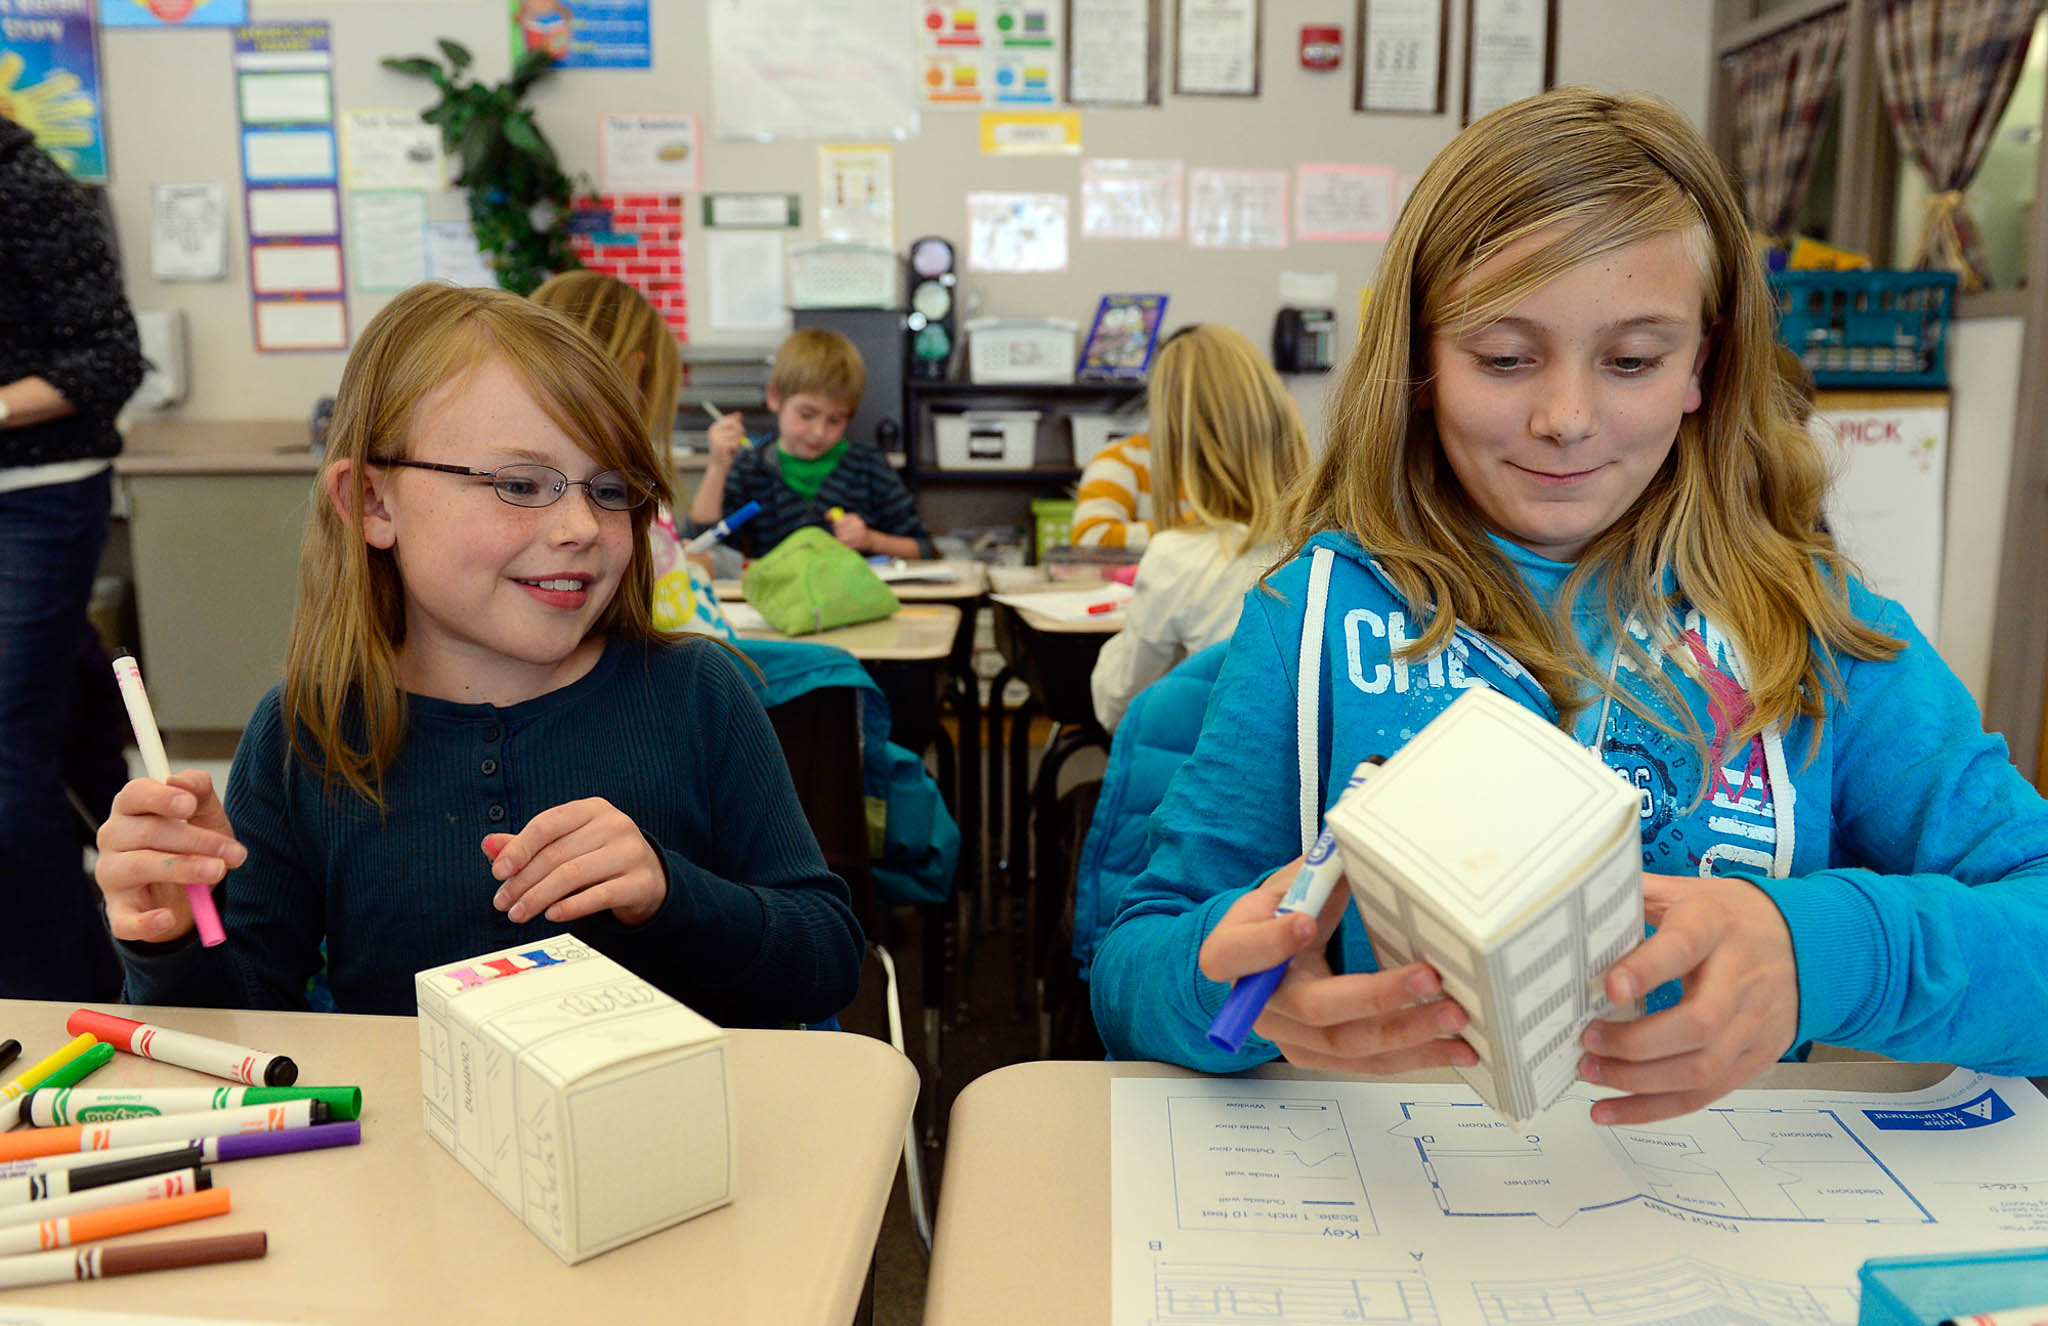 Junior Achievement teaches students about multiple aspects of business and finance. Here, third graders make paper buildings in a city planning class. (© Lewis Geyer/Digital First Media/ Boulder Daily Camera/Getty Images)